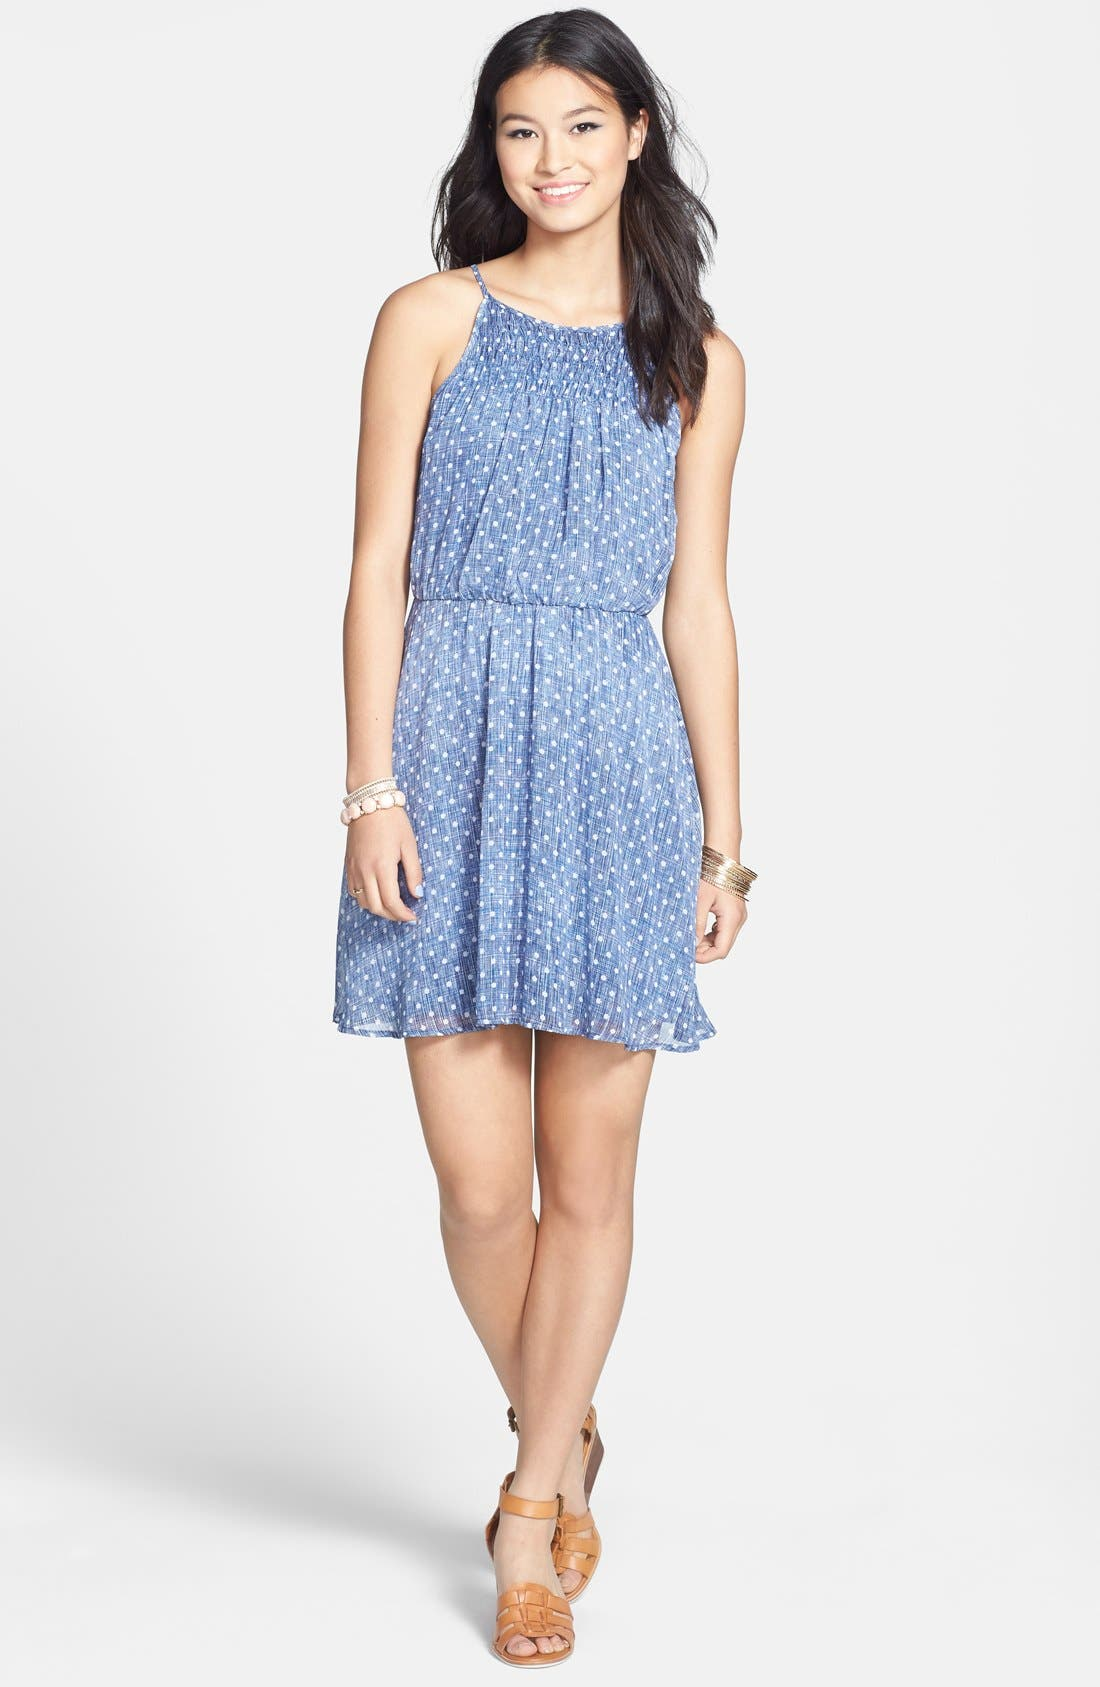 Alternate Image 1 Selected - dee elle Polka Dot Smocked Skater Dress (Juniors)